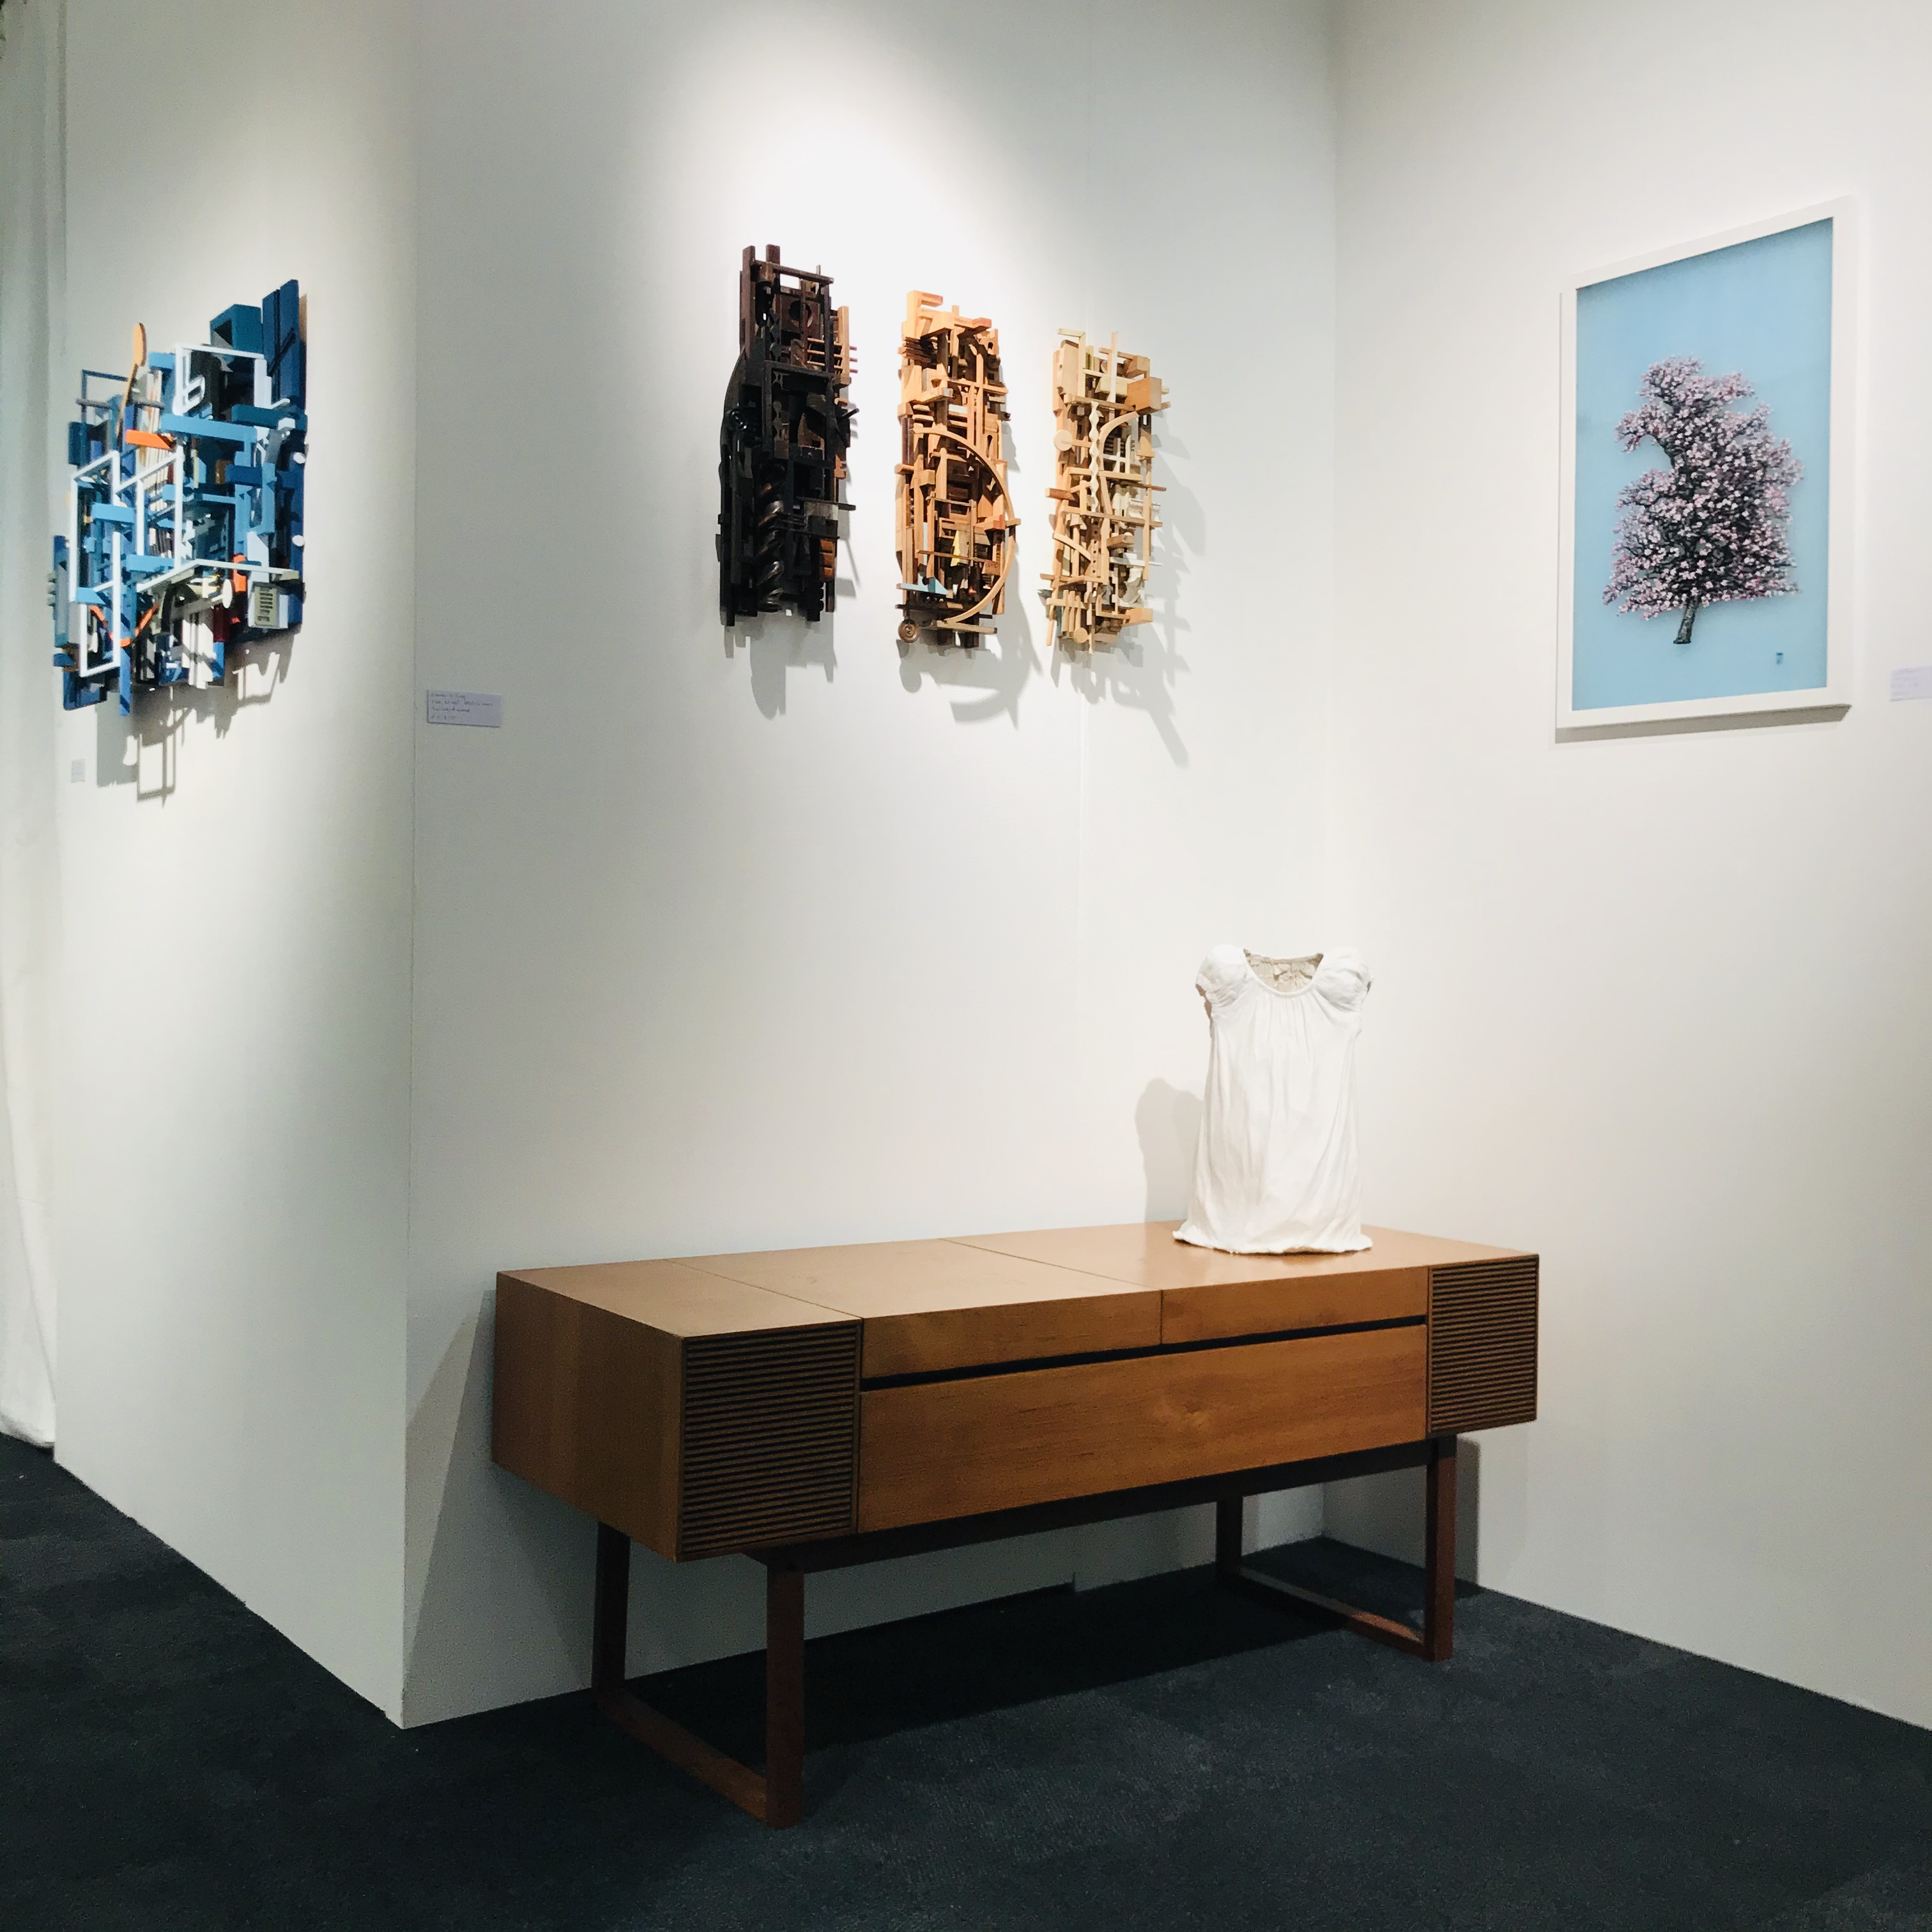 Urbane Art is delighted to be returning to the LAF this year with a new collection of works by Jack Frame, Natasha Barnes, Juliane Hundertmark, Frank Schroeder and Sylvia Tarvet.